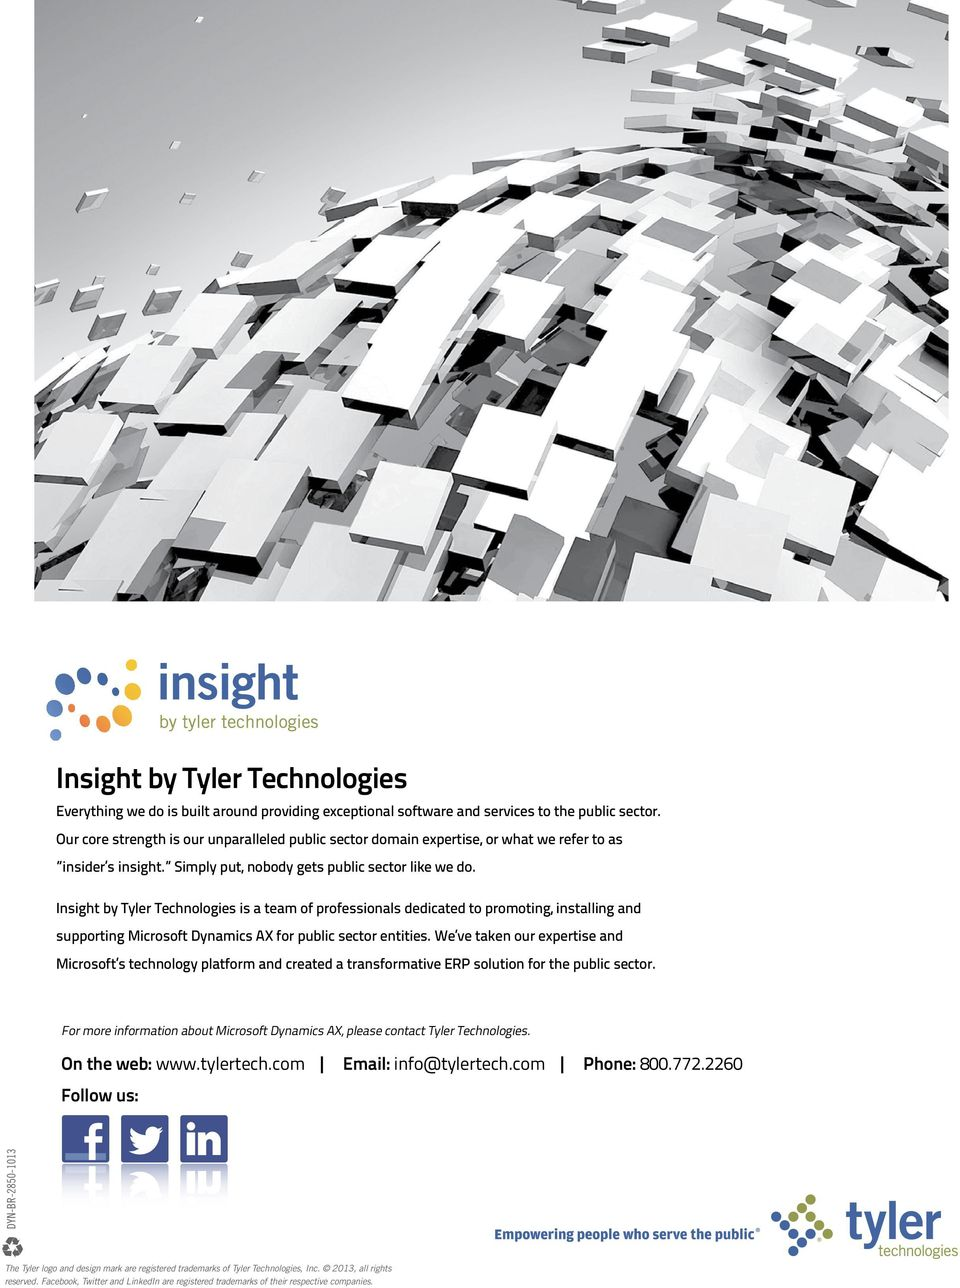 Insight by Tyler Technologies is a team of professionals dedicated to promoting, installing and supporting Microsoft Dynamics AX for public sector entities.